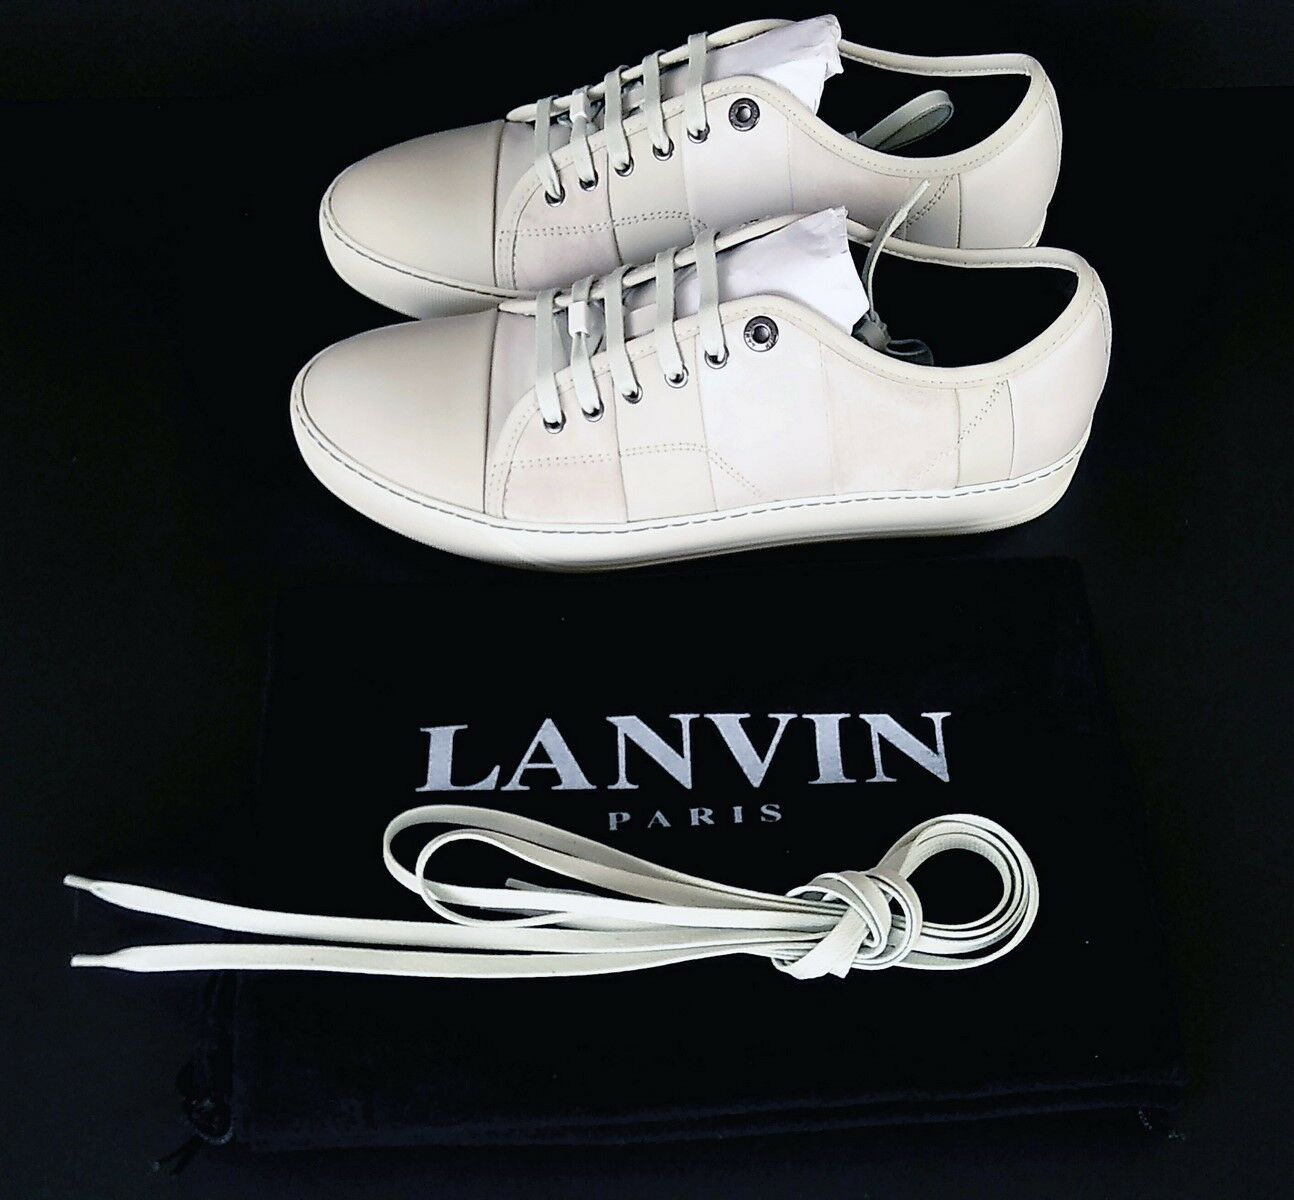 LANVIN CLASSIC PATCHWORK TOE CAP Turnschuhe - NEW IN BOX - UK7 to UK10